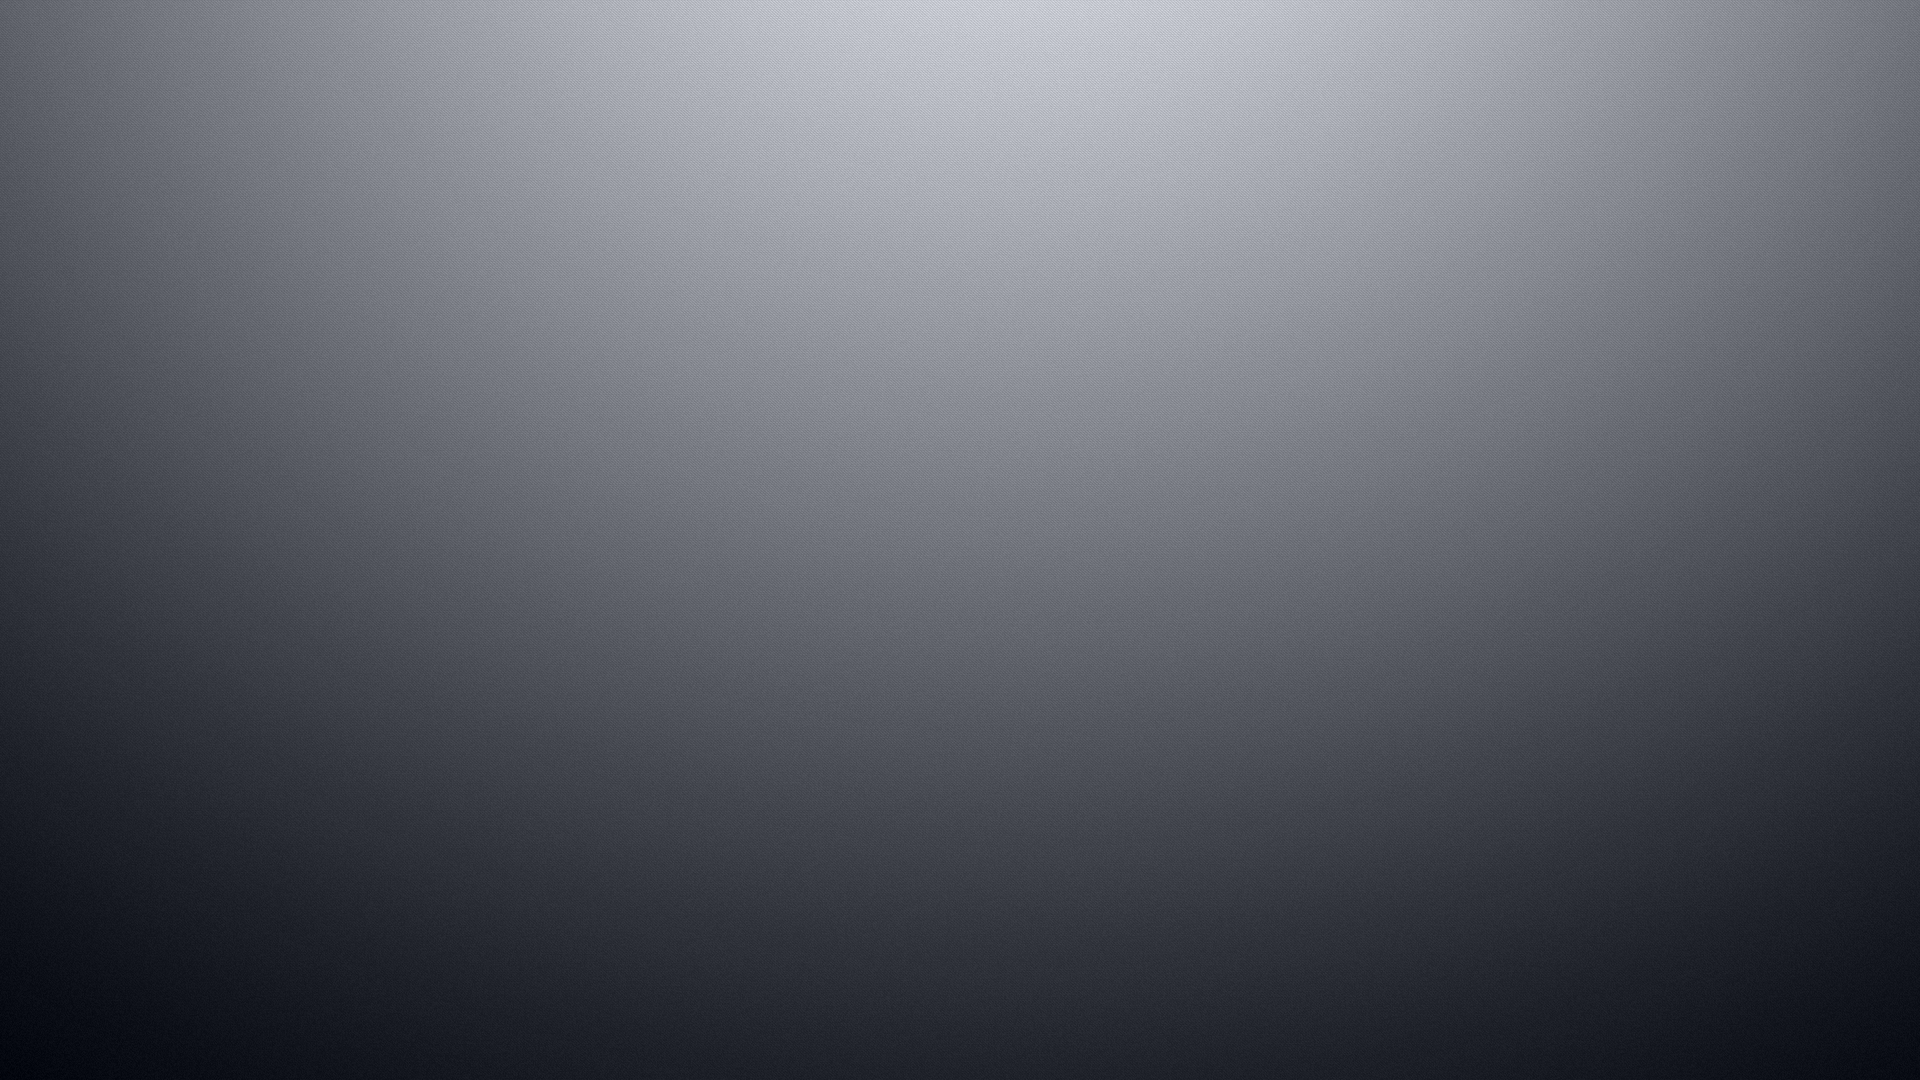 Gray Backgrounds Wallpapers Group (75+)